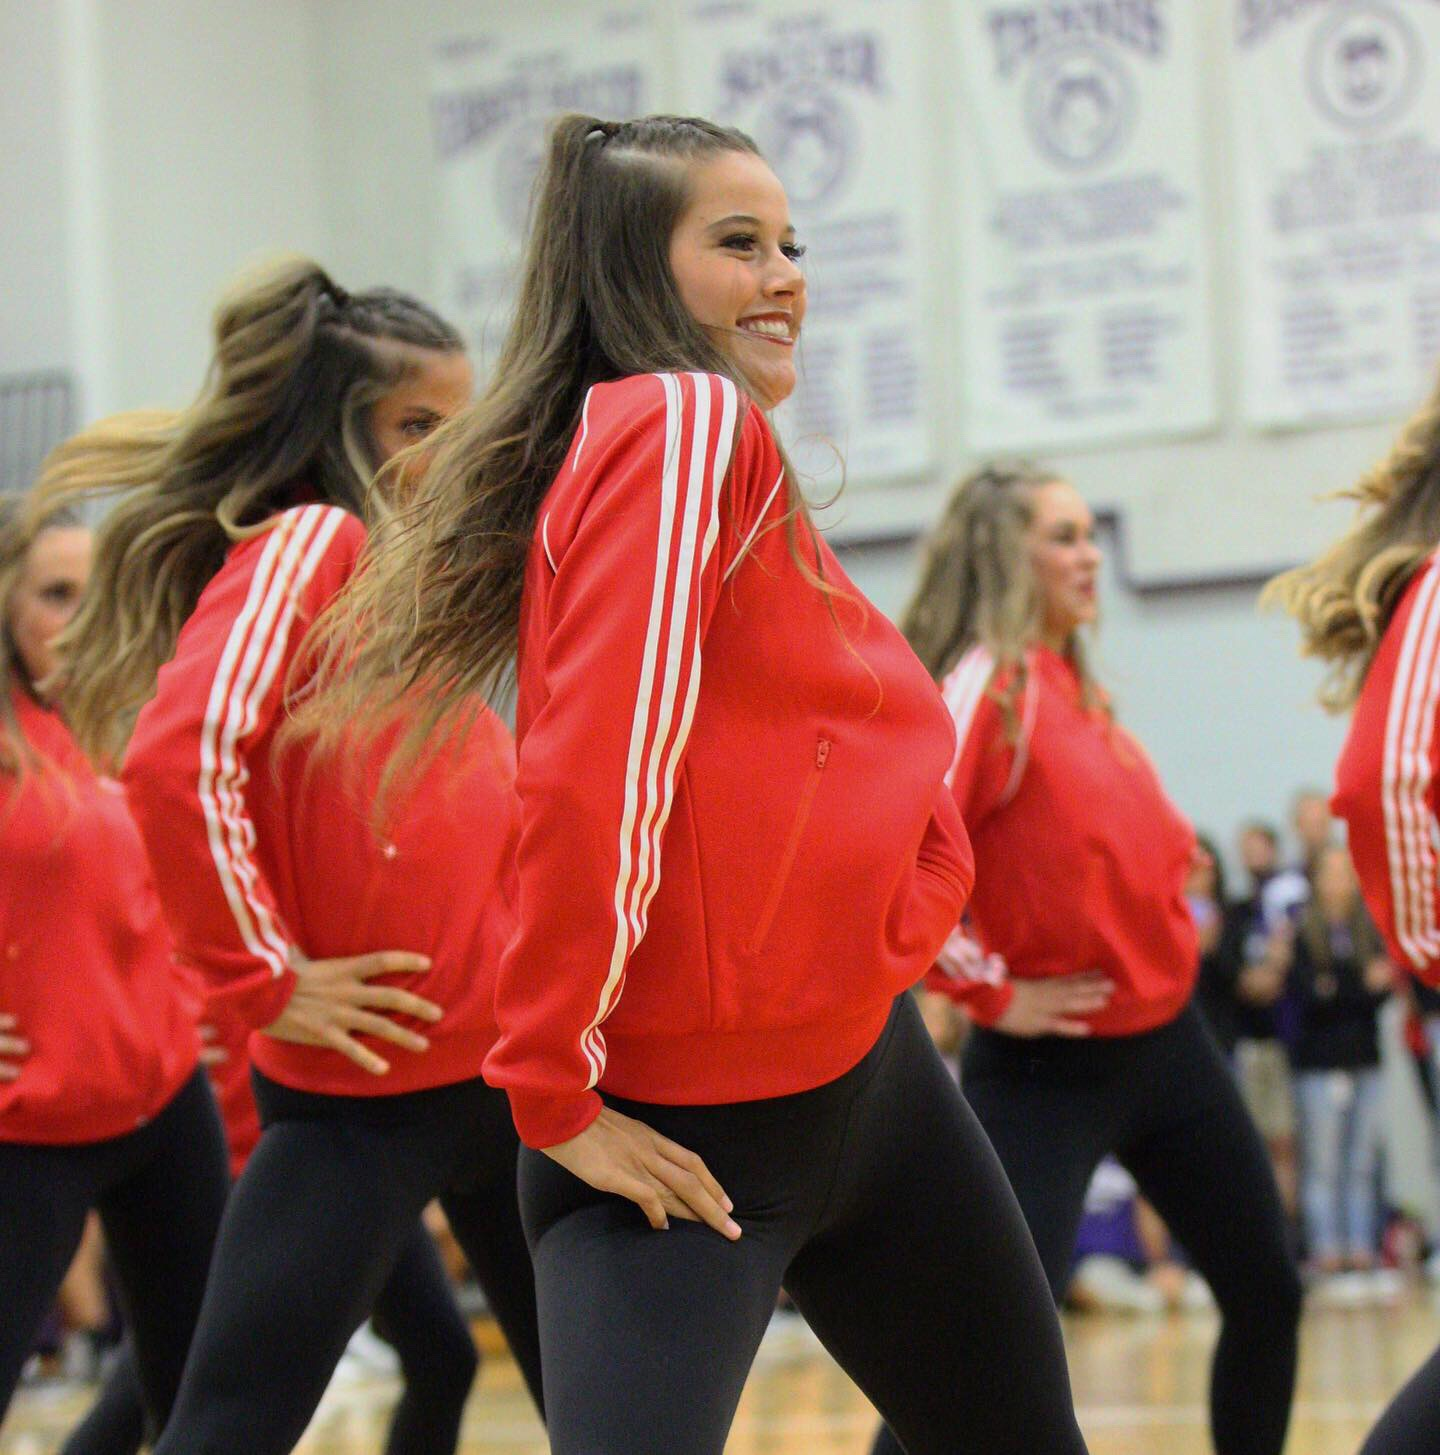 Senior+Sarah+McGuyer+performs+with+the+dance+team%2C+The+Pack%2C+at+the+pep+assembly%2C+on+Sept.+6.+